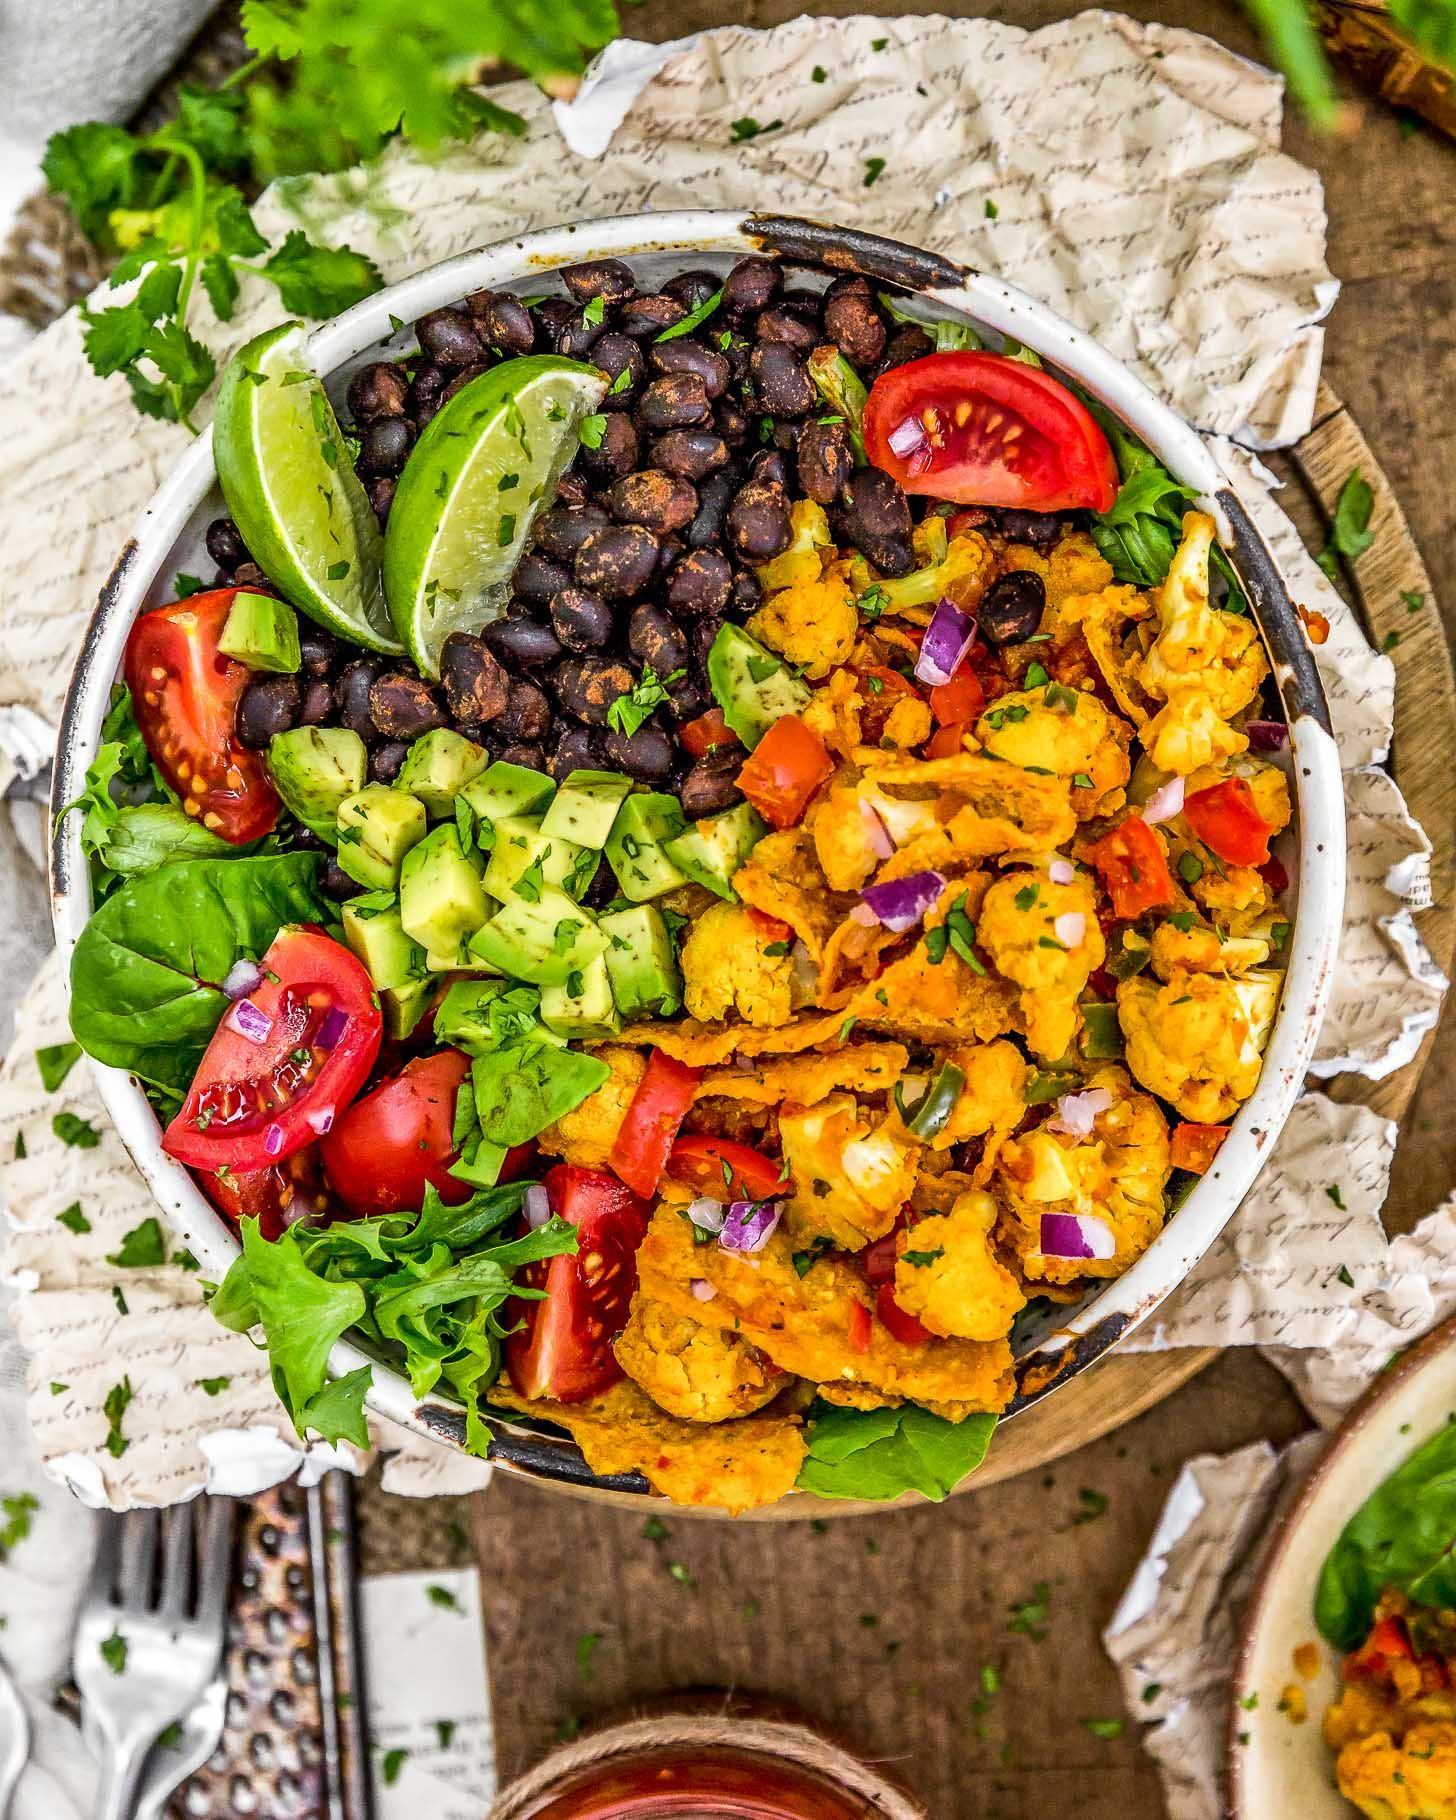 Spiced Cauliflower Salad Bowl with Avocado, Black Beans and Tomatoes